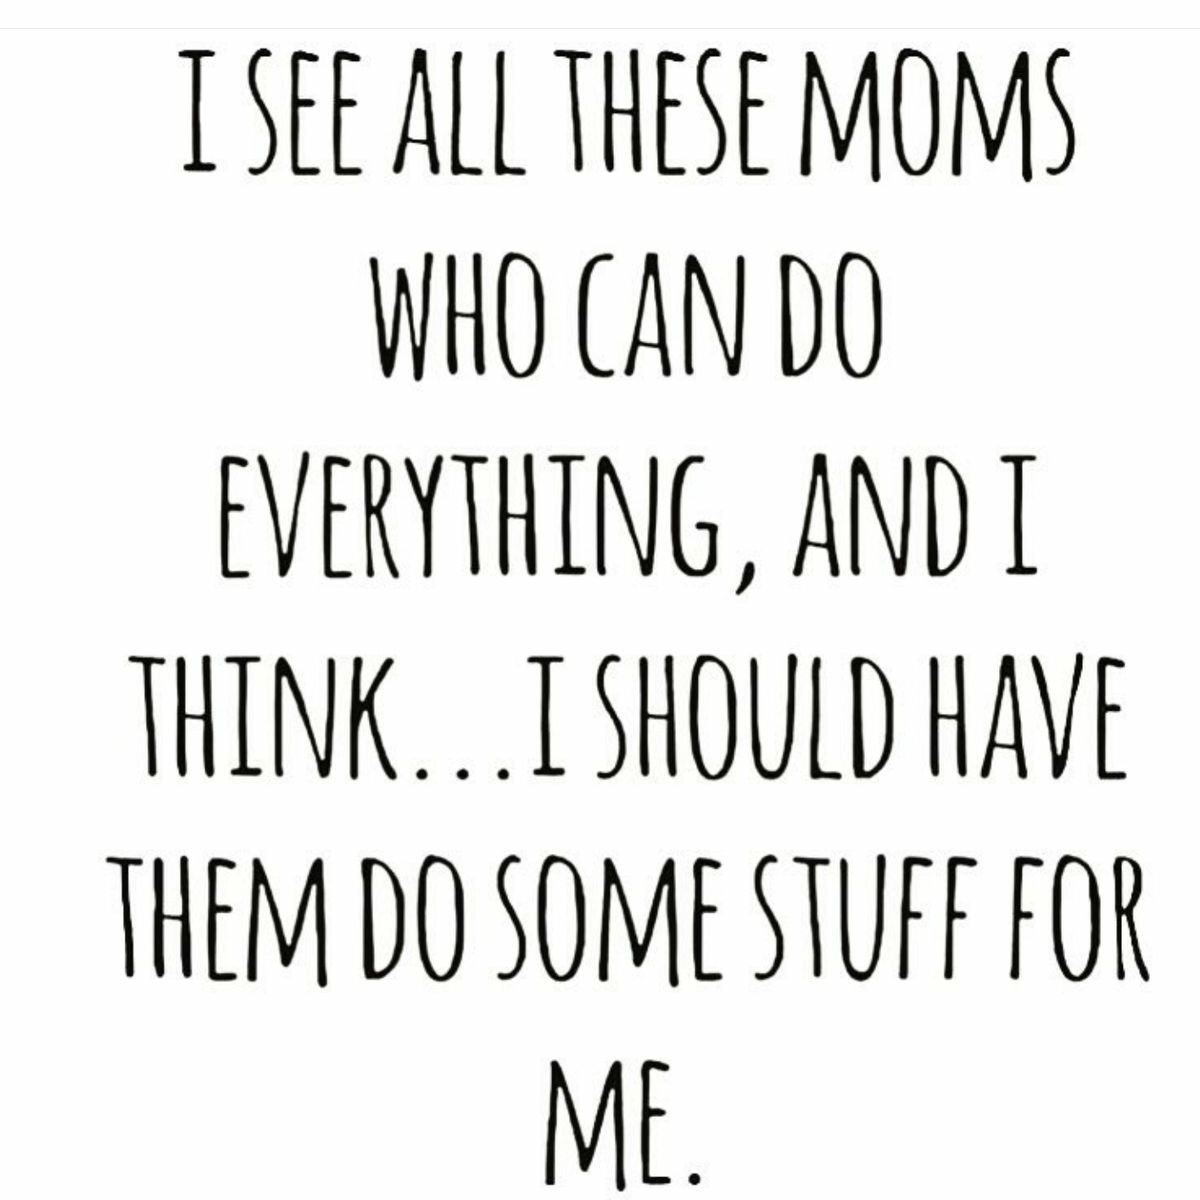 Oh my, yes! Some days I am so not productive...like all of the days that end in &quot;y&quot;. #momlife #crazymom<br>http://pic.twitter.com/GiRNScJCNi